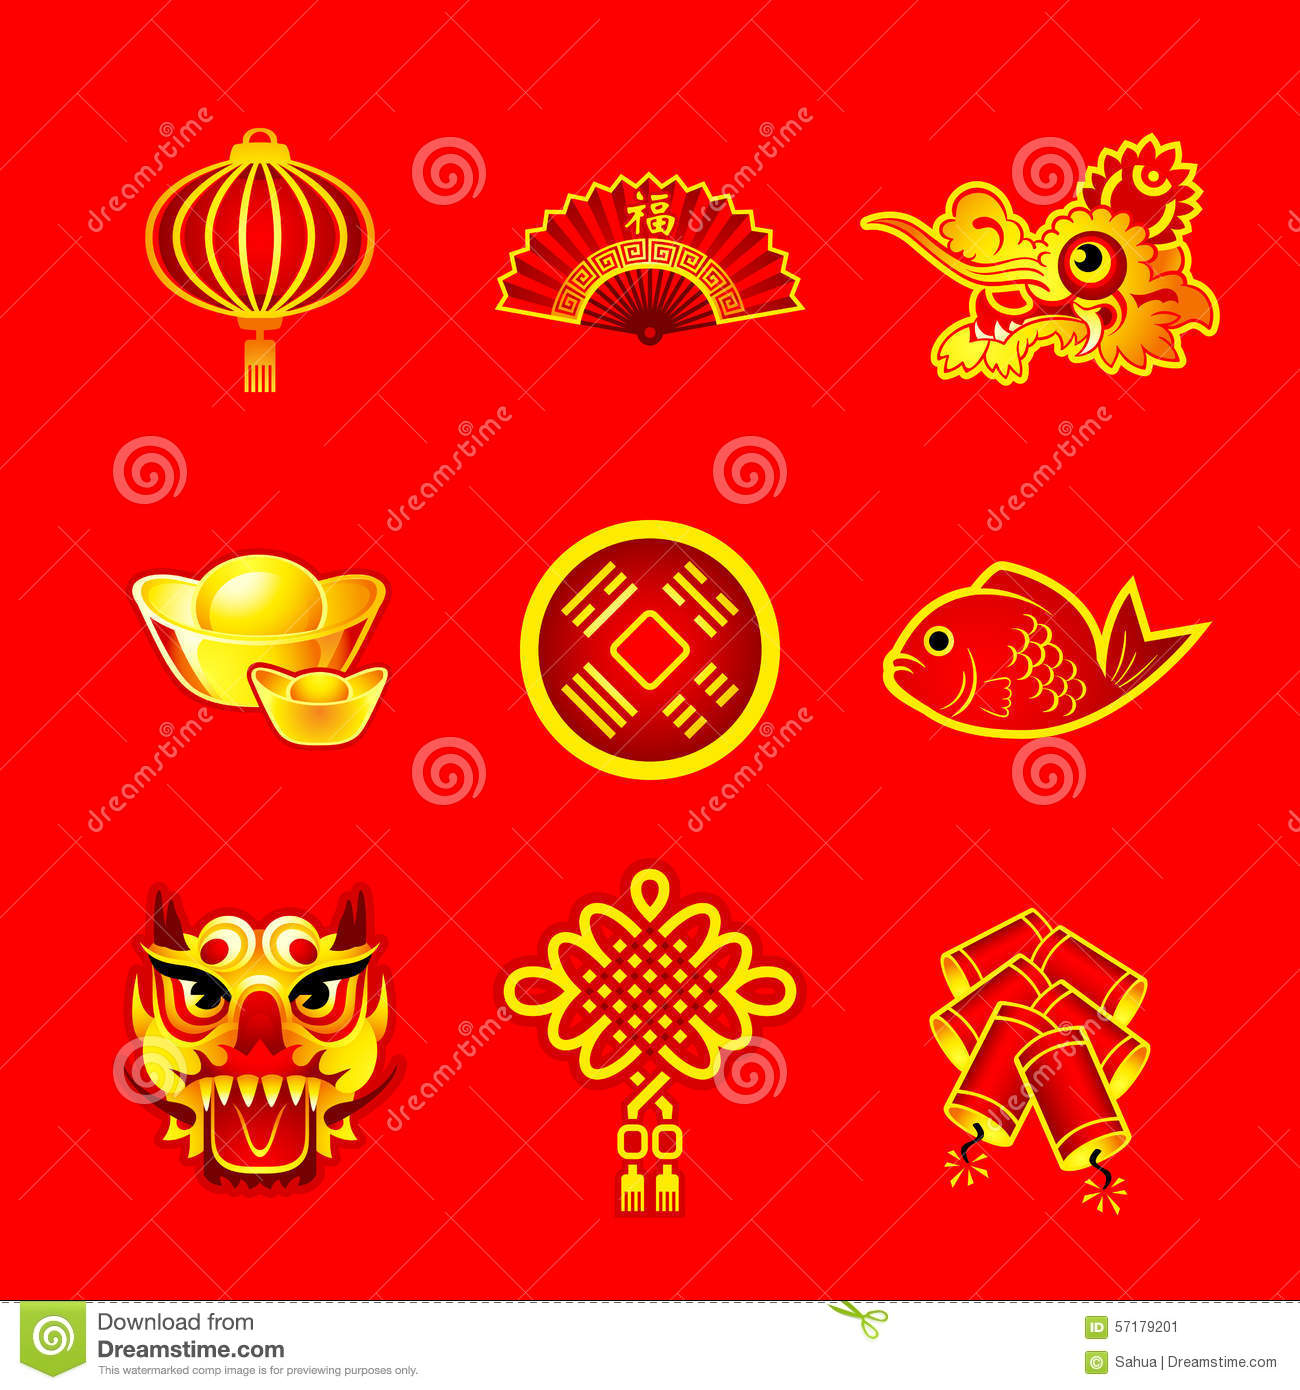 chinese new year symbols - Chinese New Year Symbols